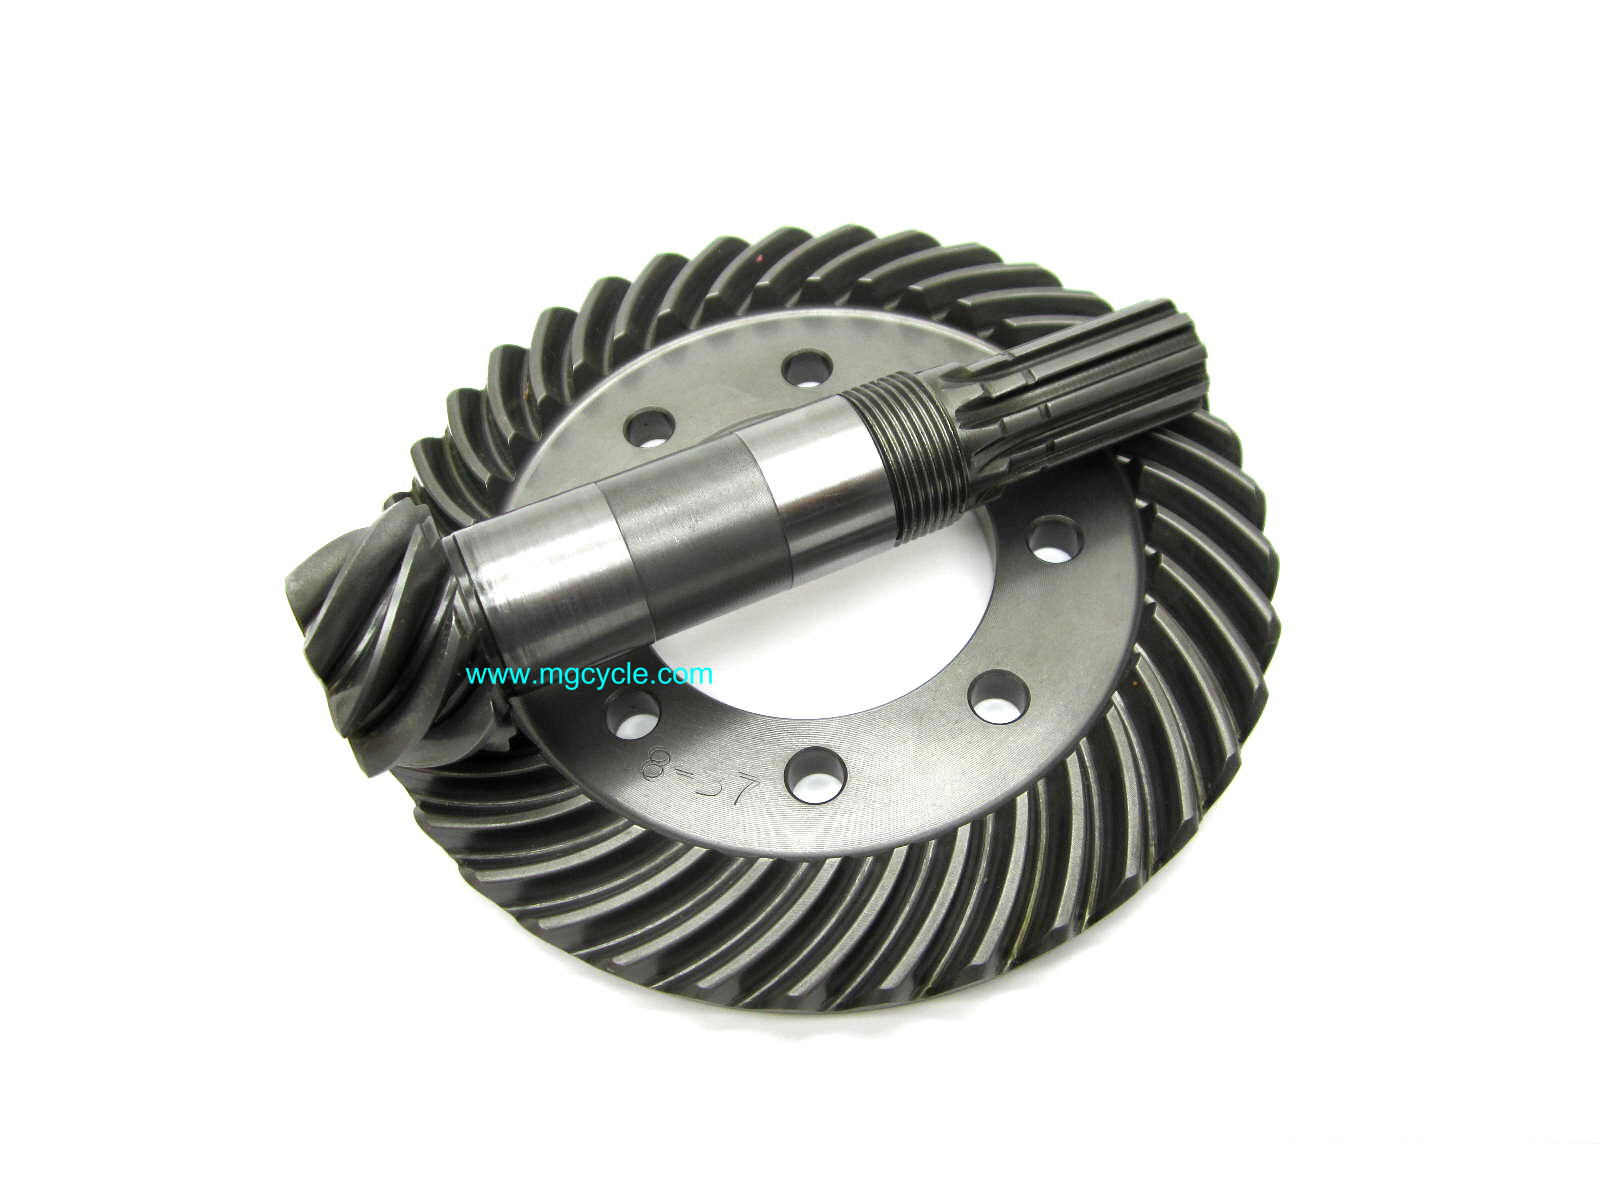 Ring and pinion gear set, 8-37, Eldorado, 850T, 850GT